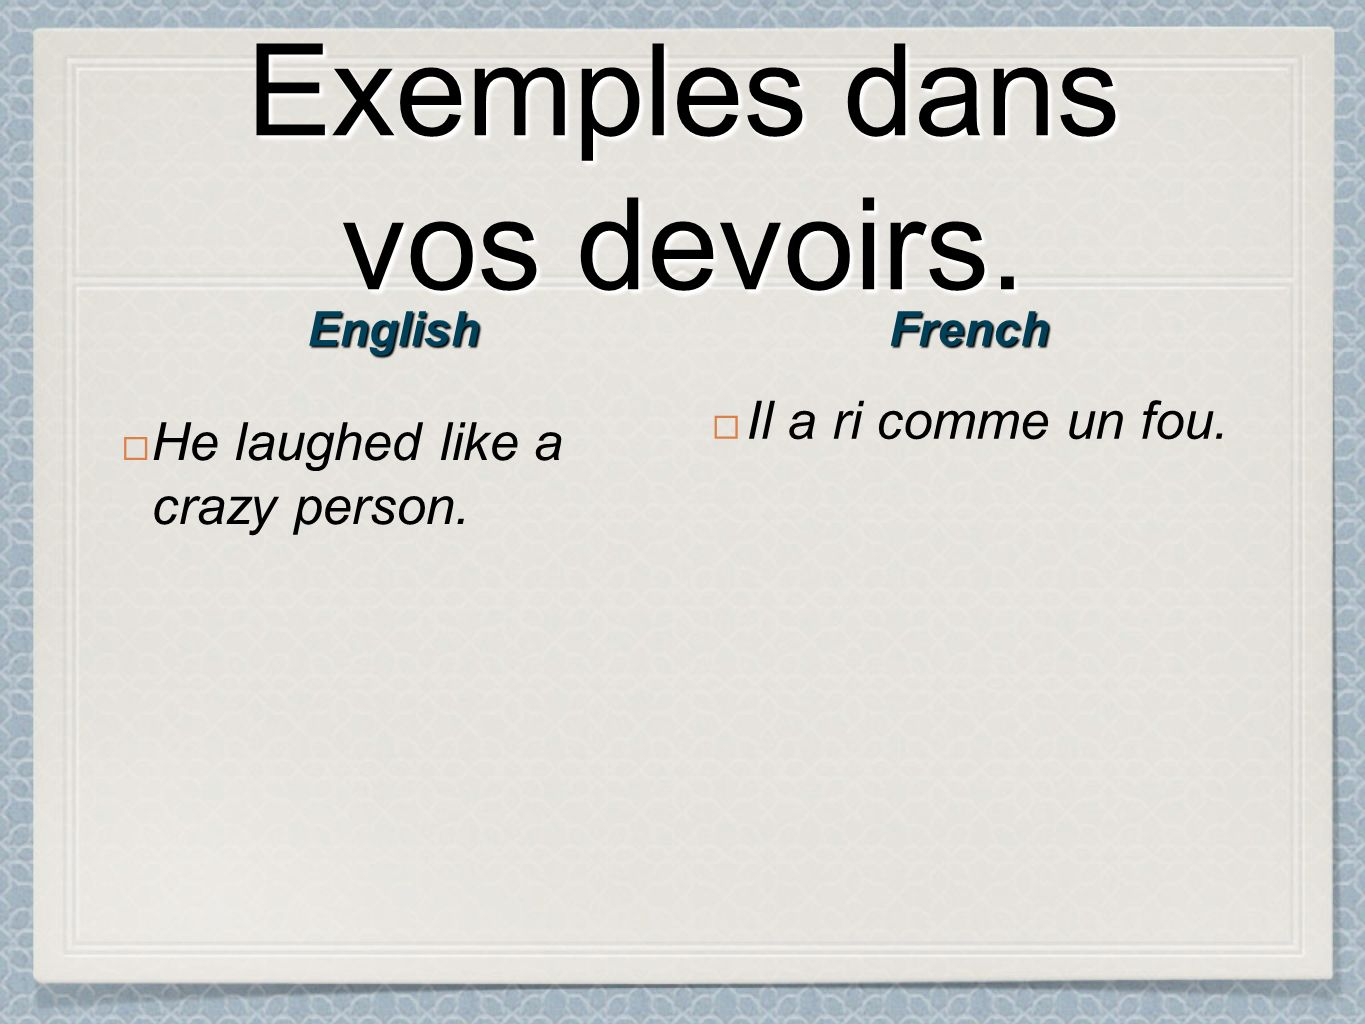 Exemples dans vos devoirs. He laughed like a crazy person. Il a ri comme un fou. FrenchEnglish